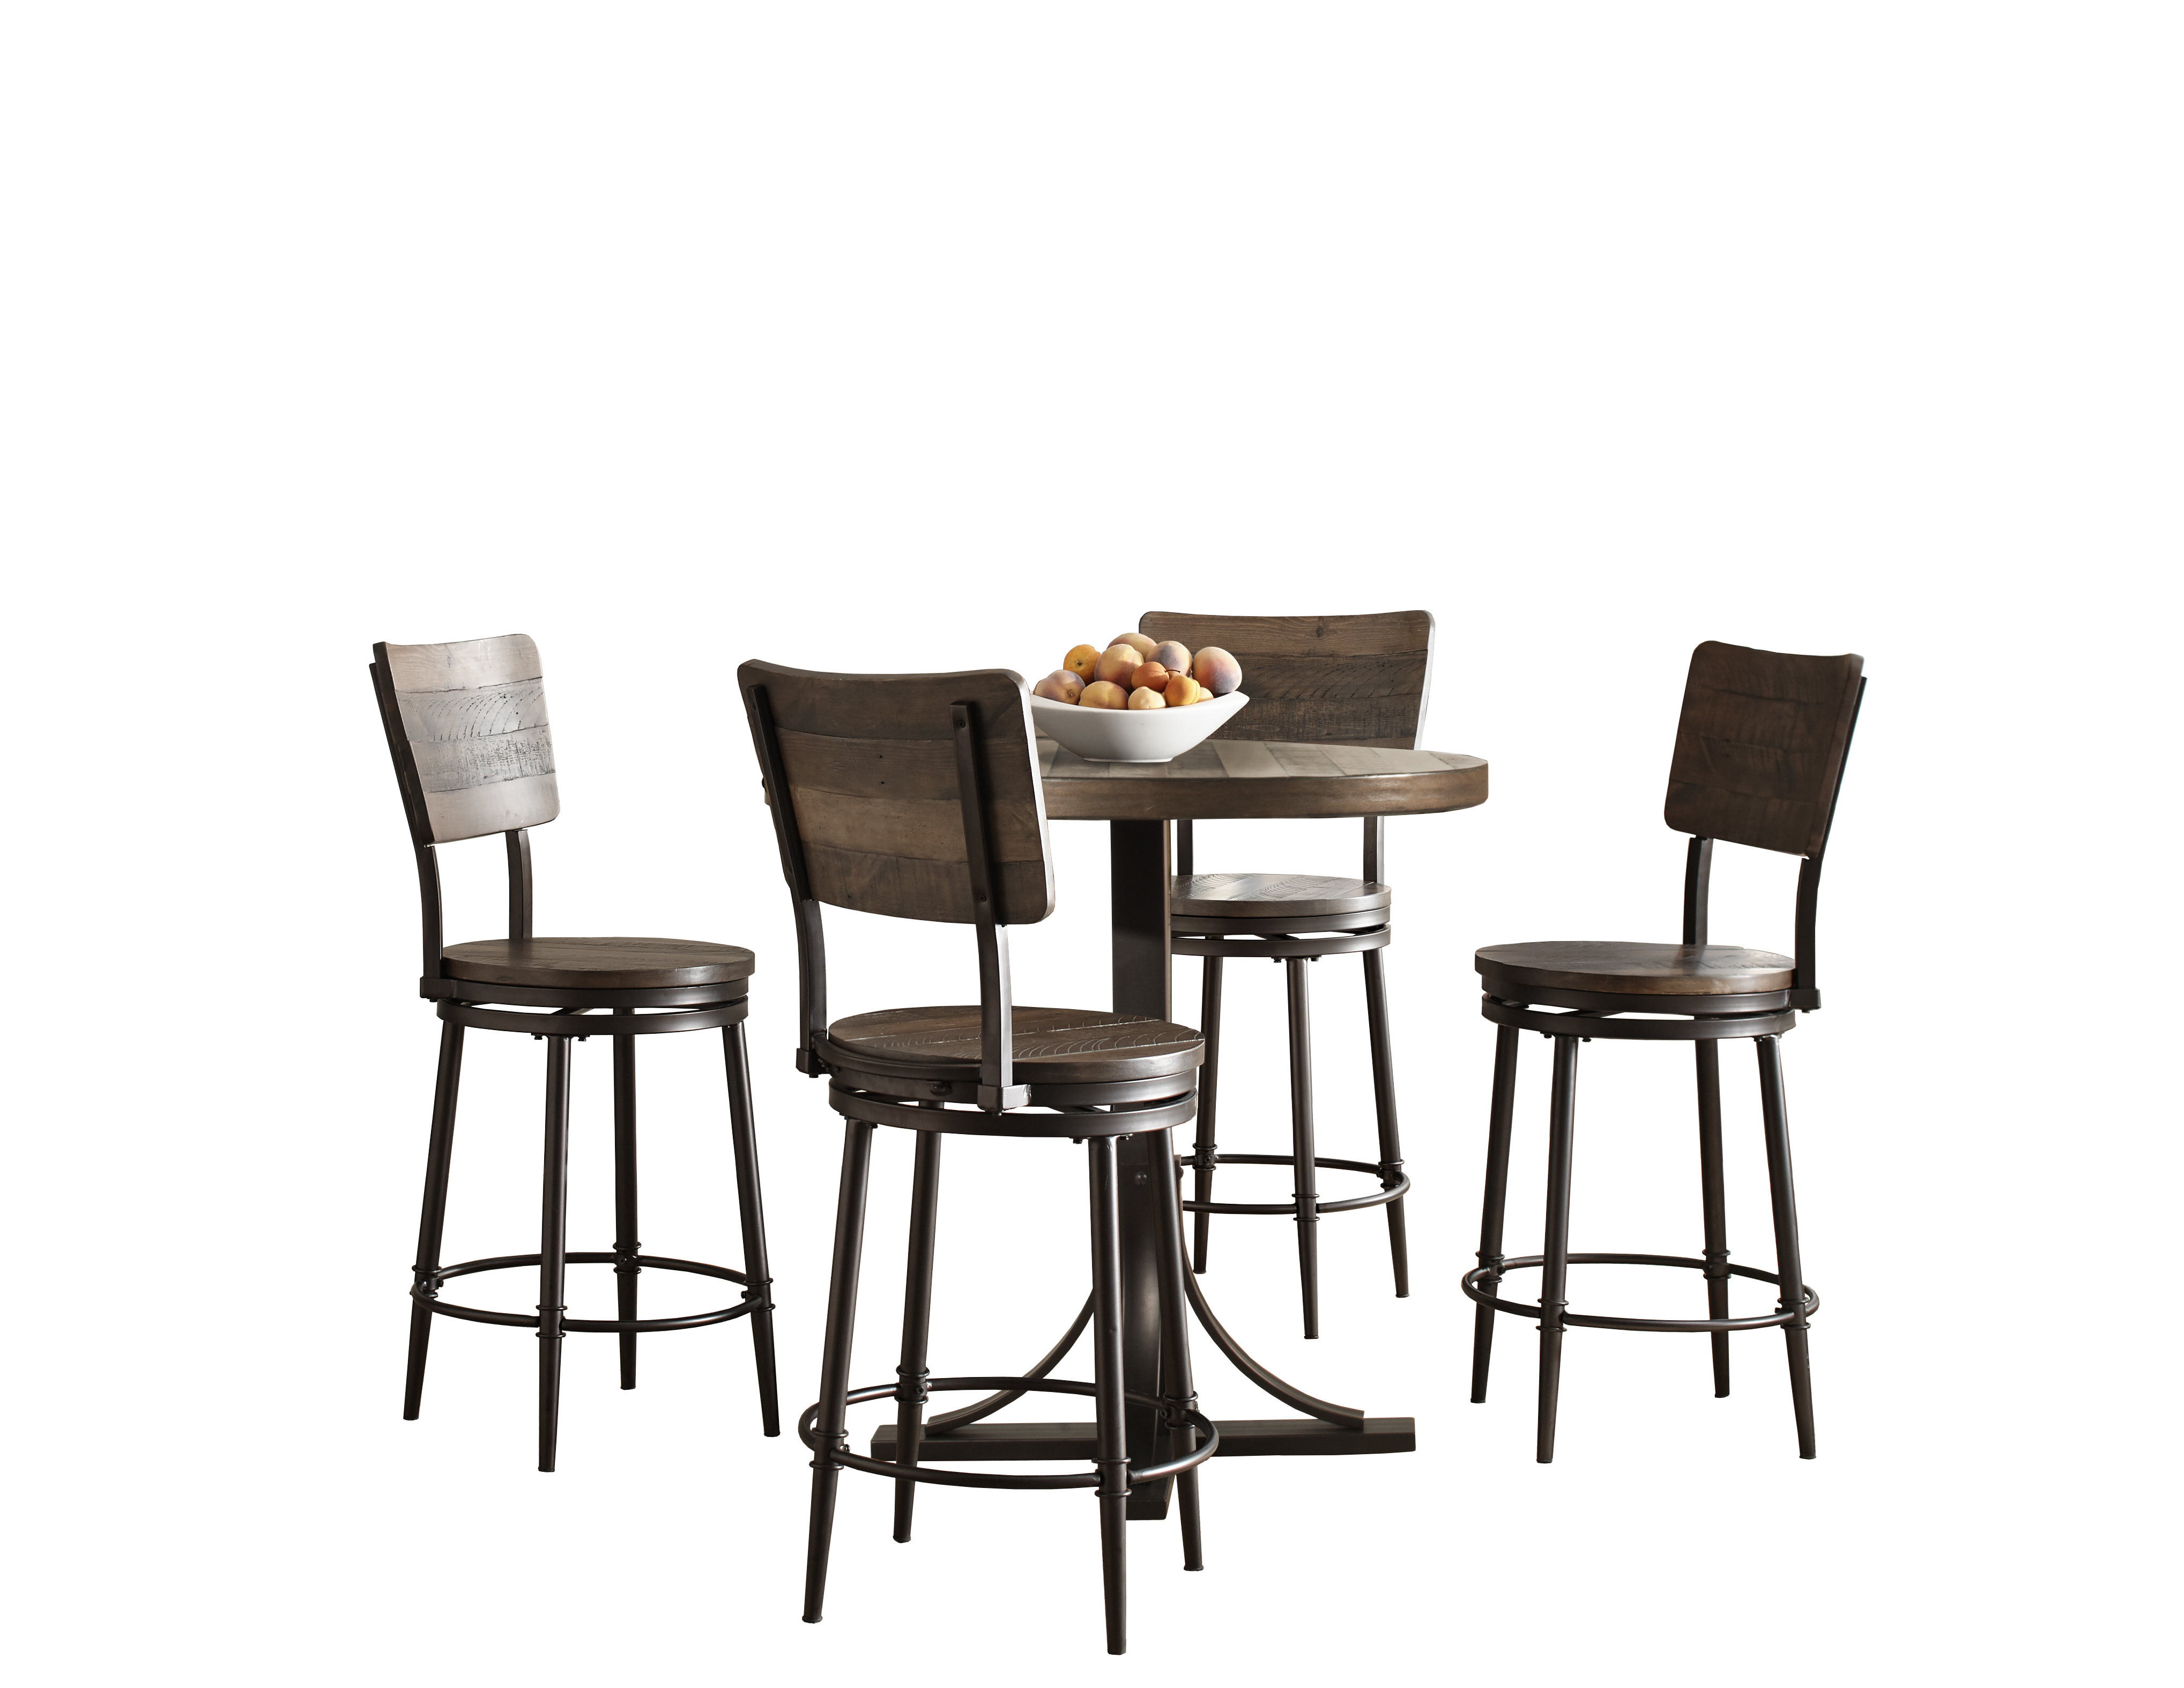 Calla 5 Piece Dining Sets Pertaining To Widely Used Gracie Oaks Putney 5 Piece Counter Height Breakfast Nook Dining Set (View 6 of 25)